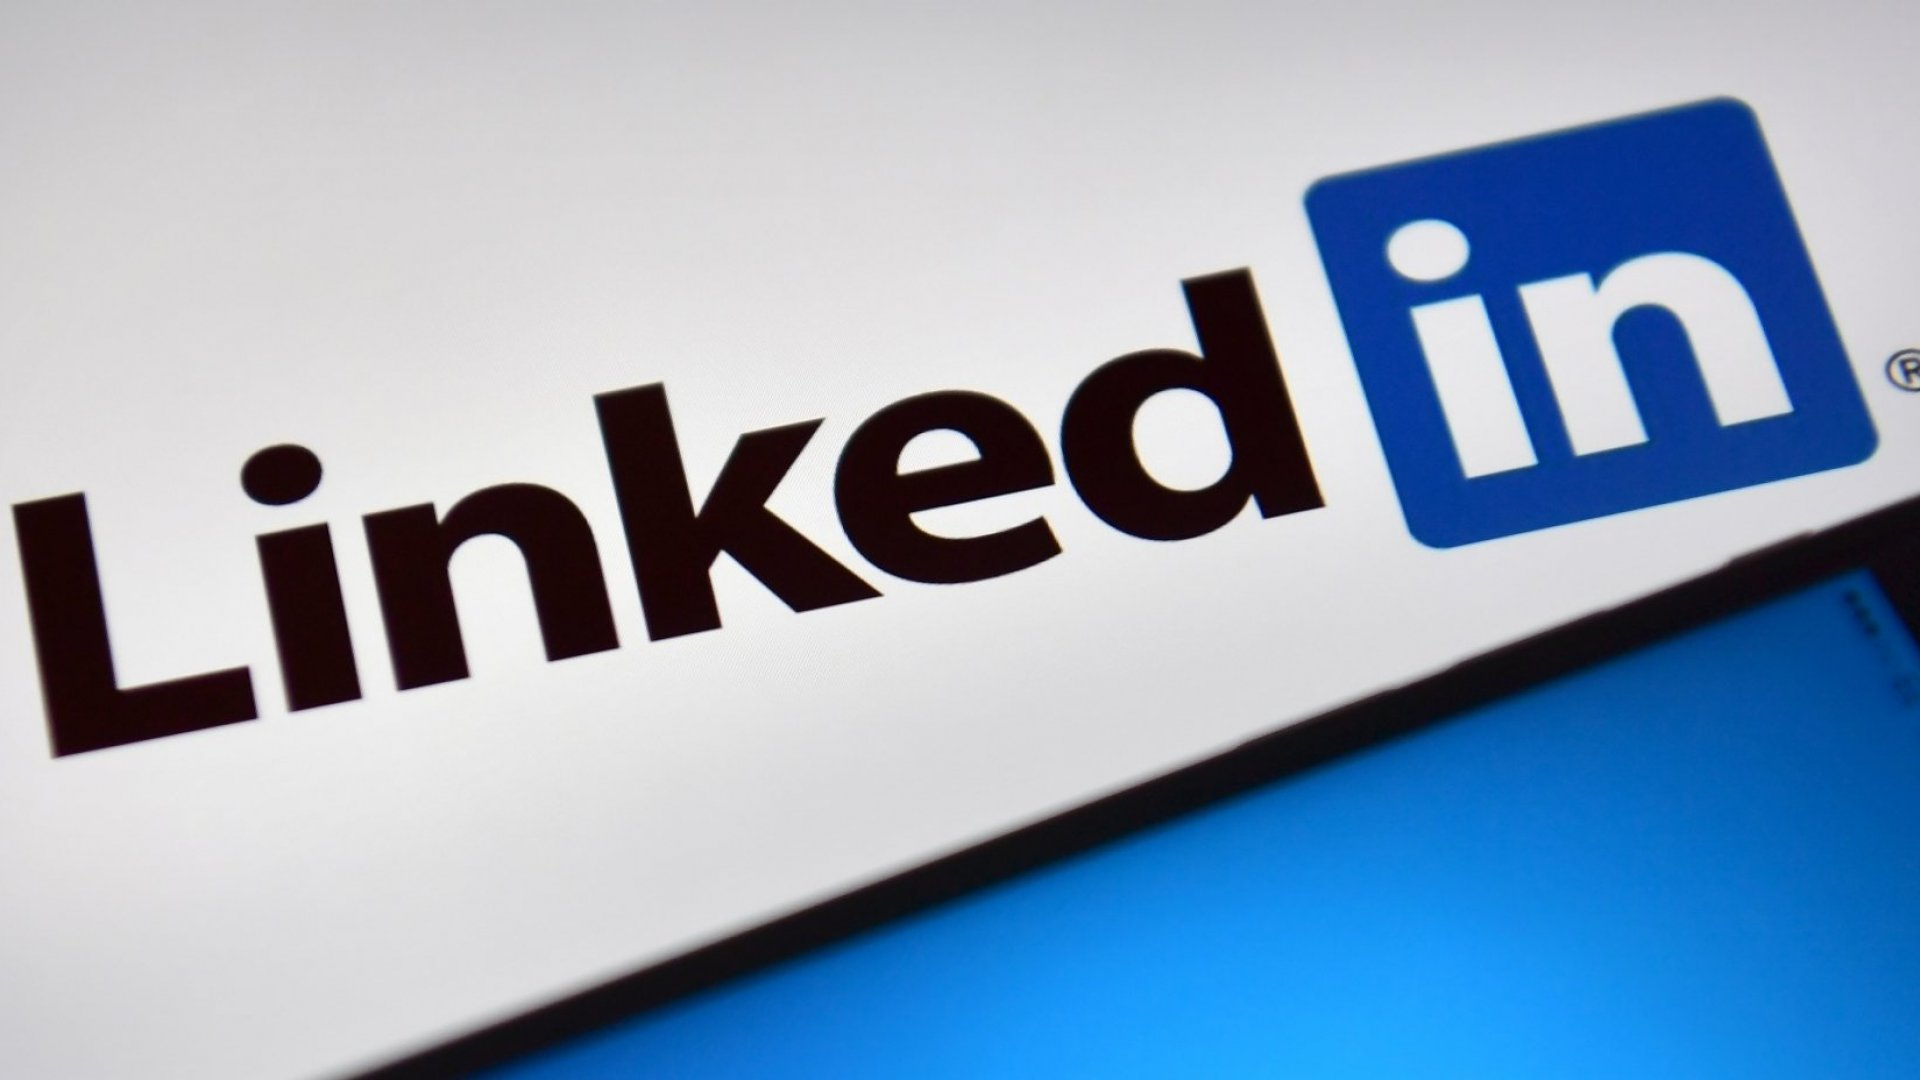 LinkedIn Just Revealed a Surprising New Way to Make Your Profile Really Stand Out (This Changes Everything)